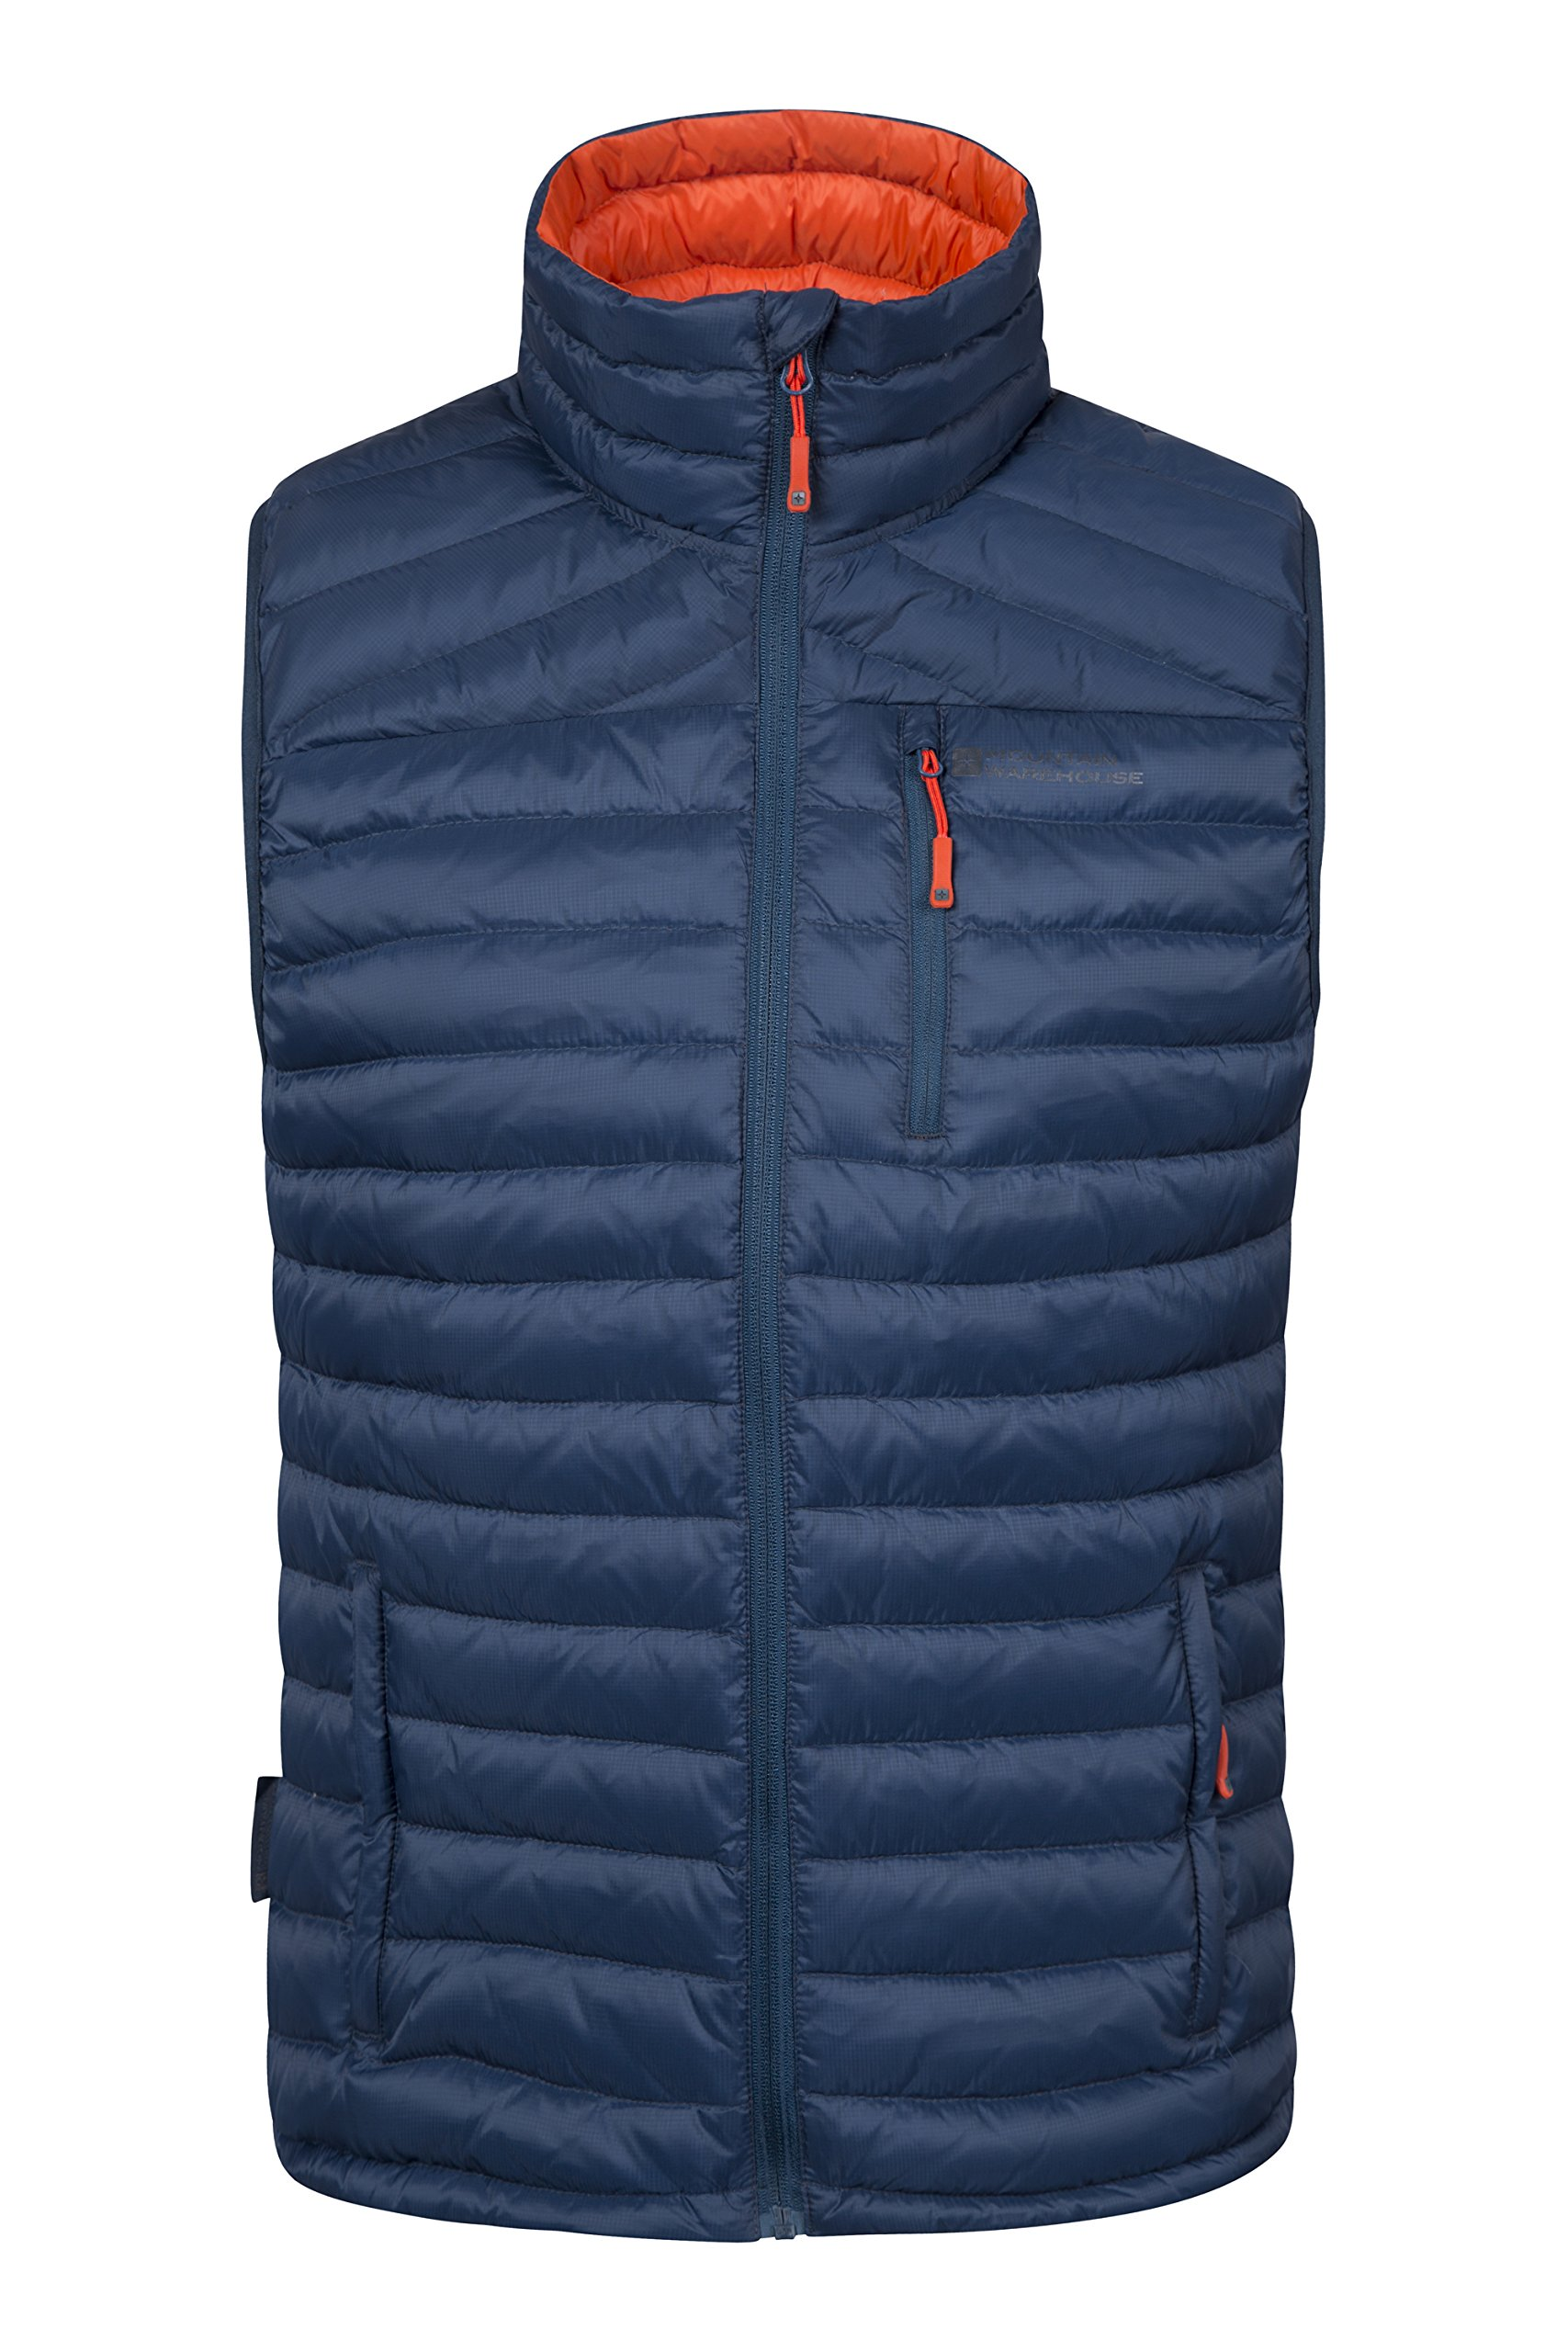 Mountain Warehouse Henry Mens Down Gilet - Padded Mens Summer Jacket Petrol Blue X-Large